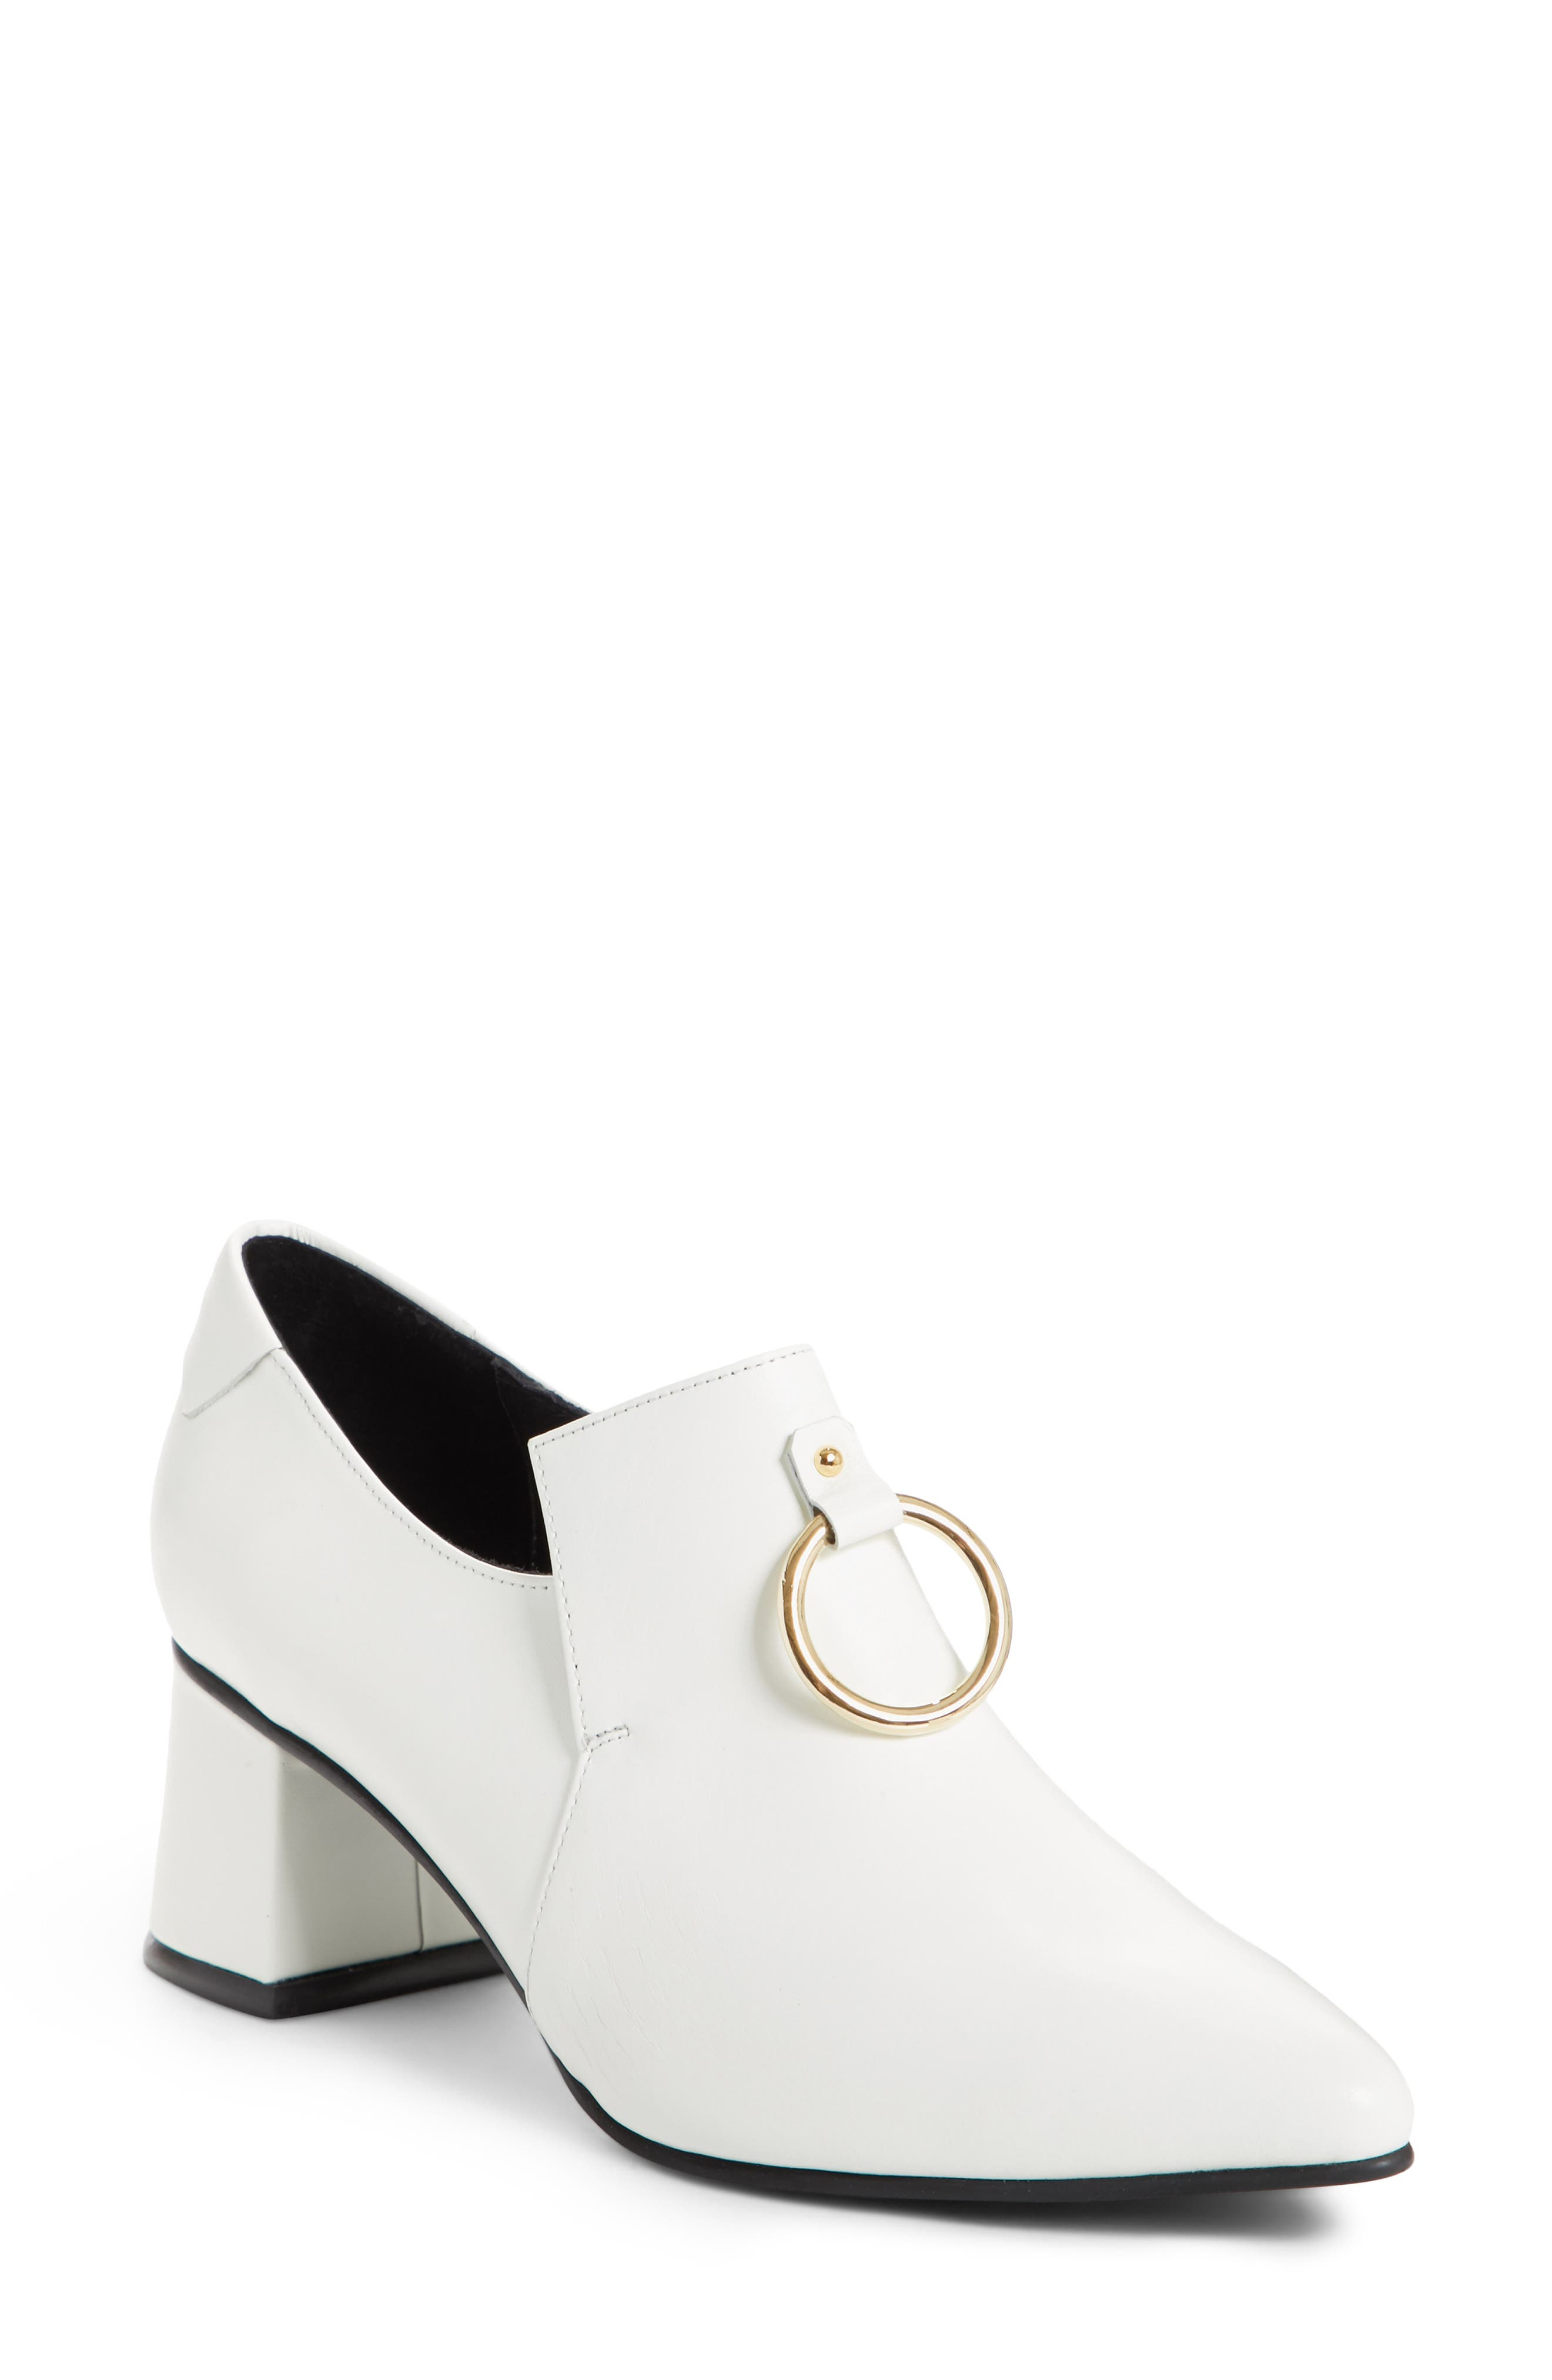 Ring Middle Loafer Pump,                             Main thumbnail 1, color,                             White